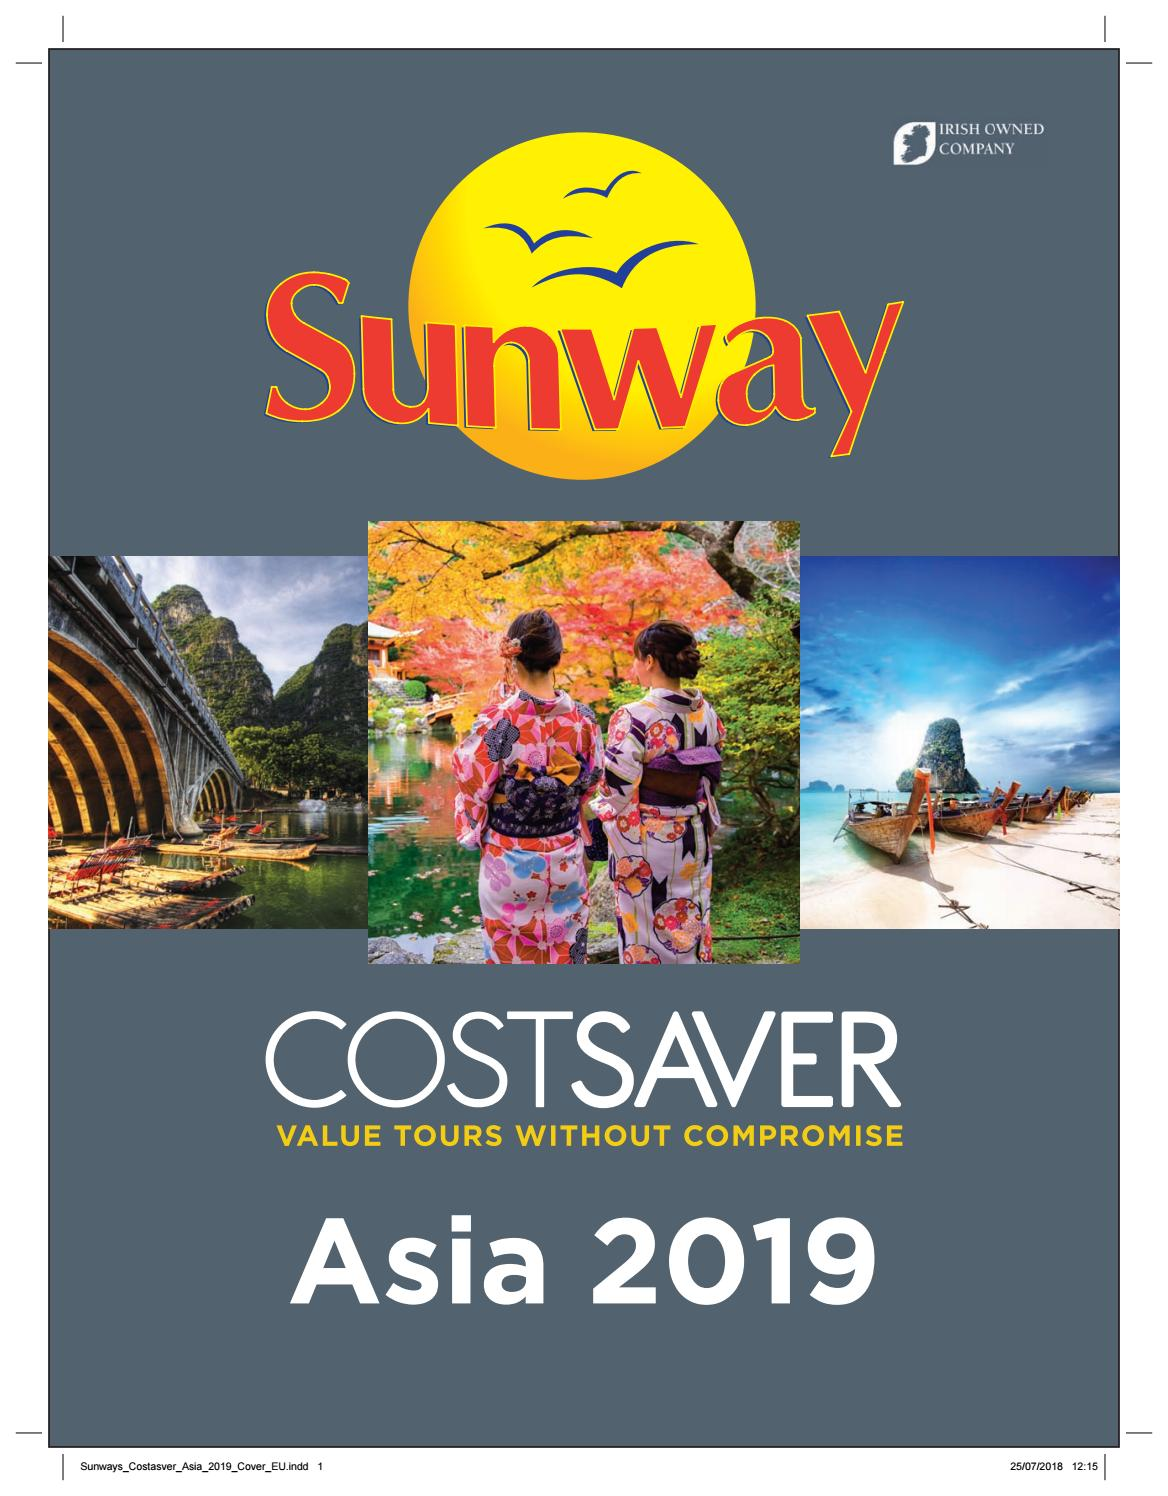 02b93ea19 Costsaver Escorted Tours Asia 2019 operated by Trafalgar. from Sunway  Travel Group. Read issue here